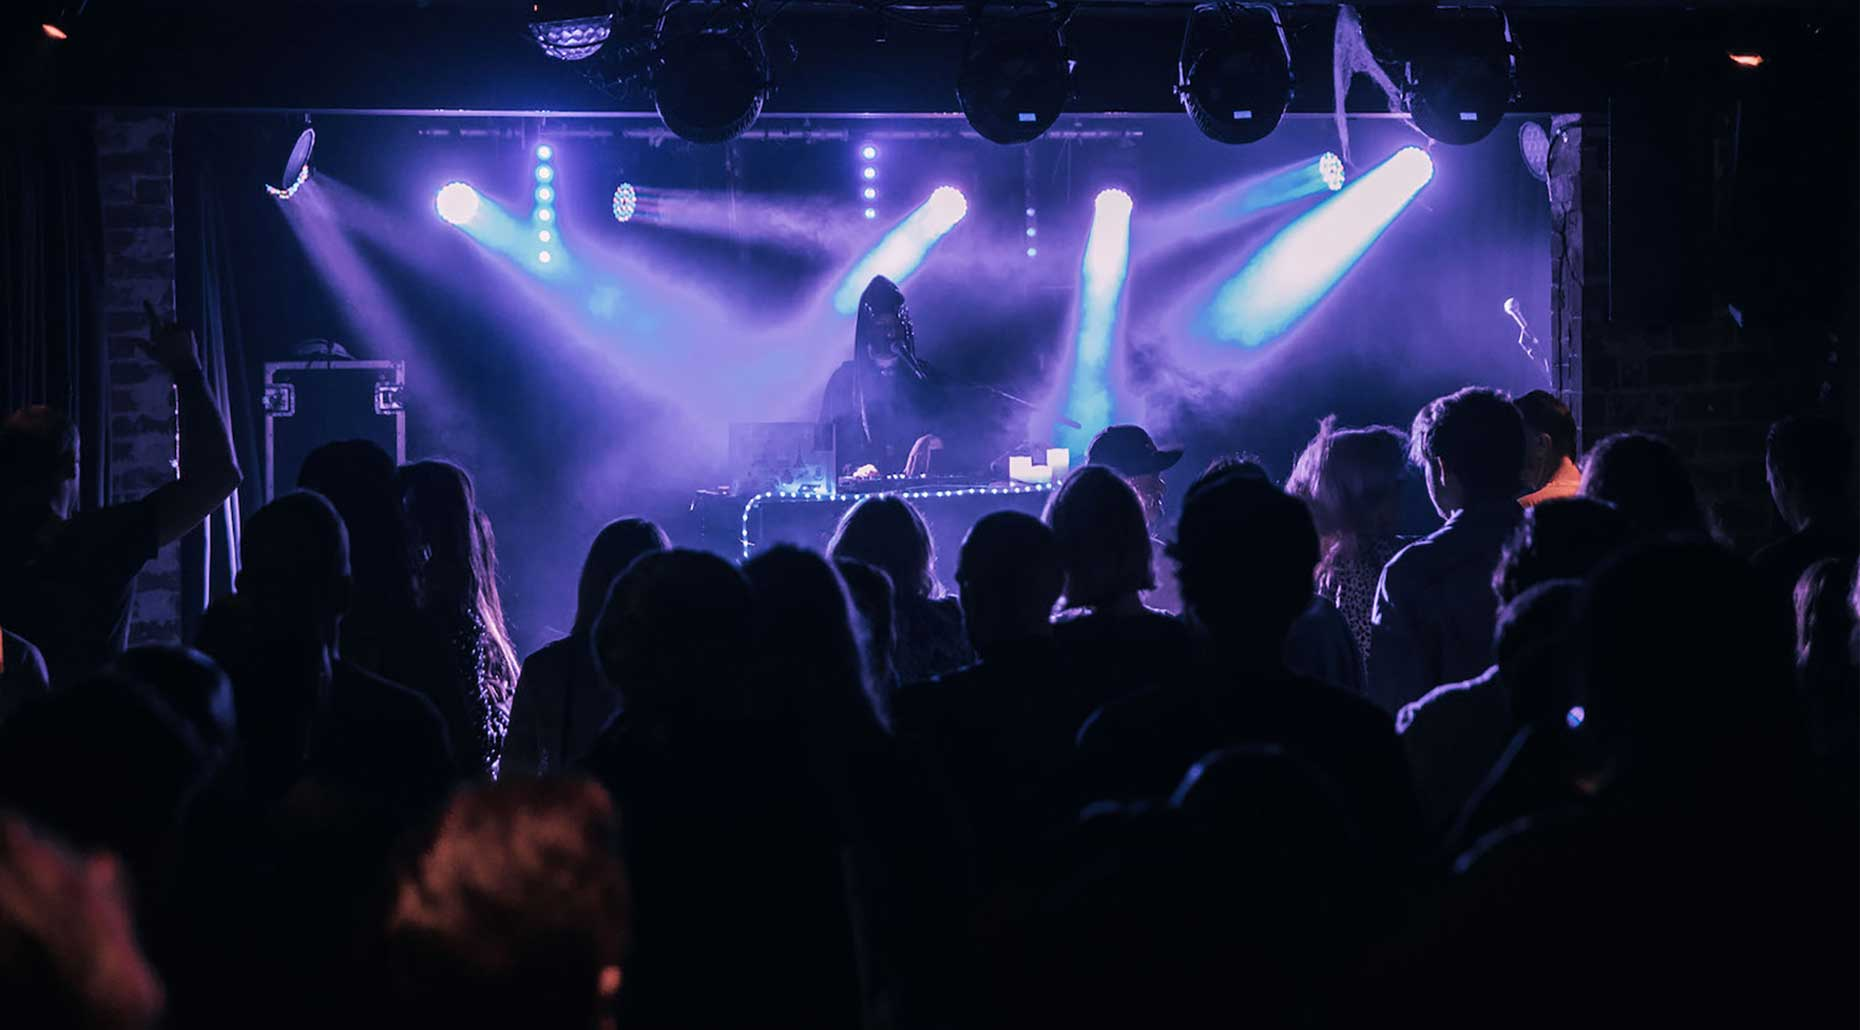 Brux performing live. Image supplied by Electronic Music Conference